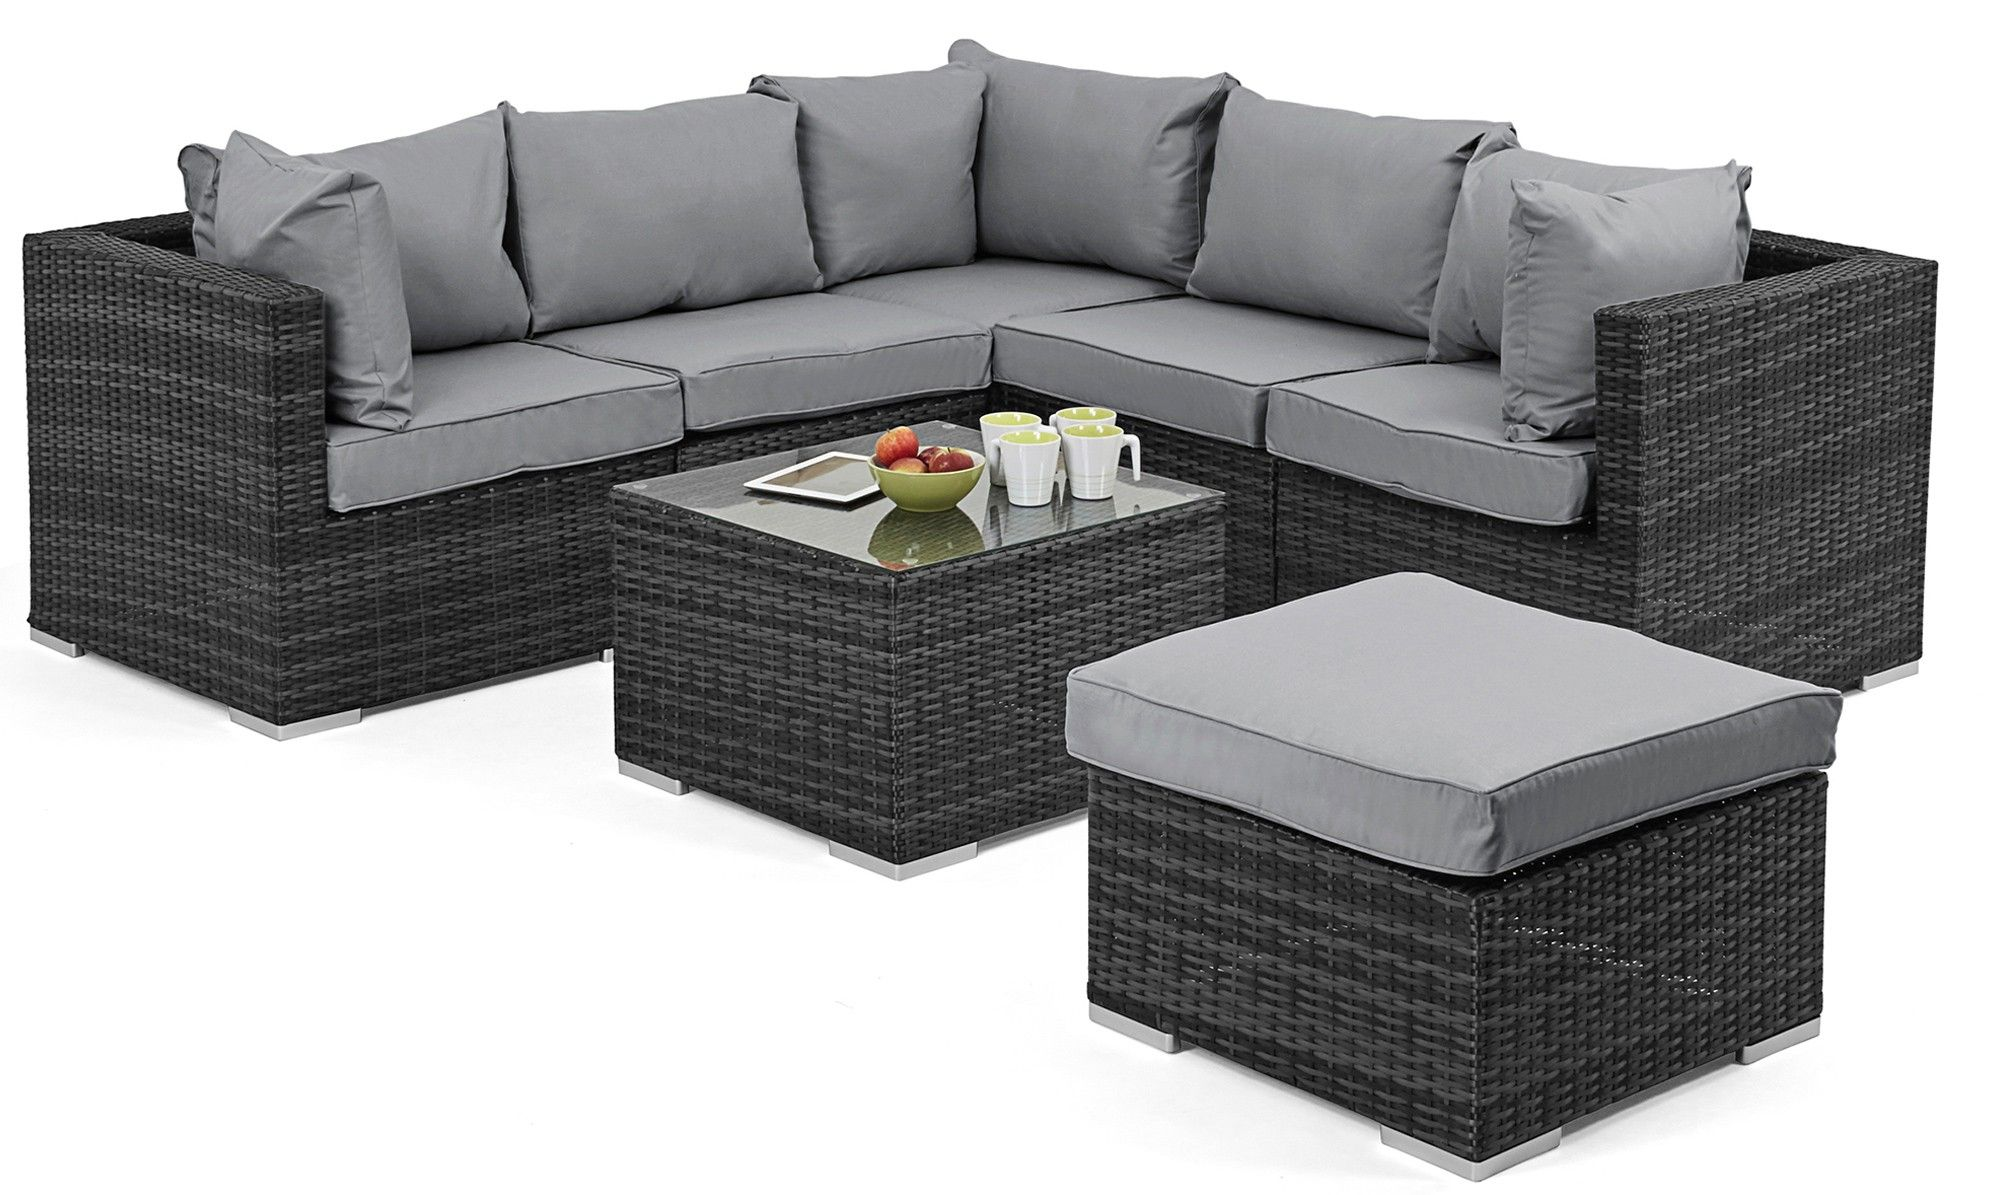 Naples Corner Sofa Grey Rattan Garden Set Outdoor Furniture Cushions Rattan Garden Furniture Rattan Corner Sofa